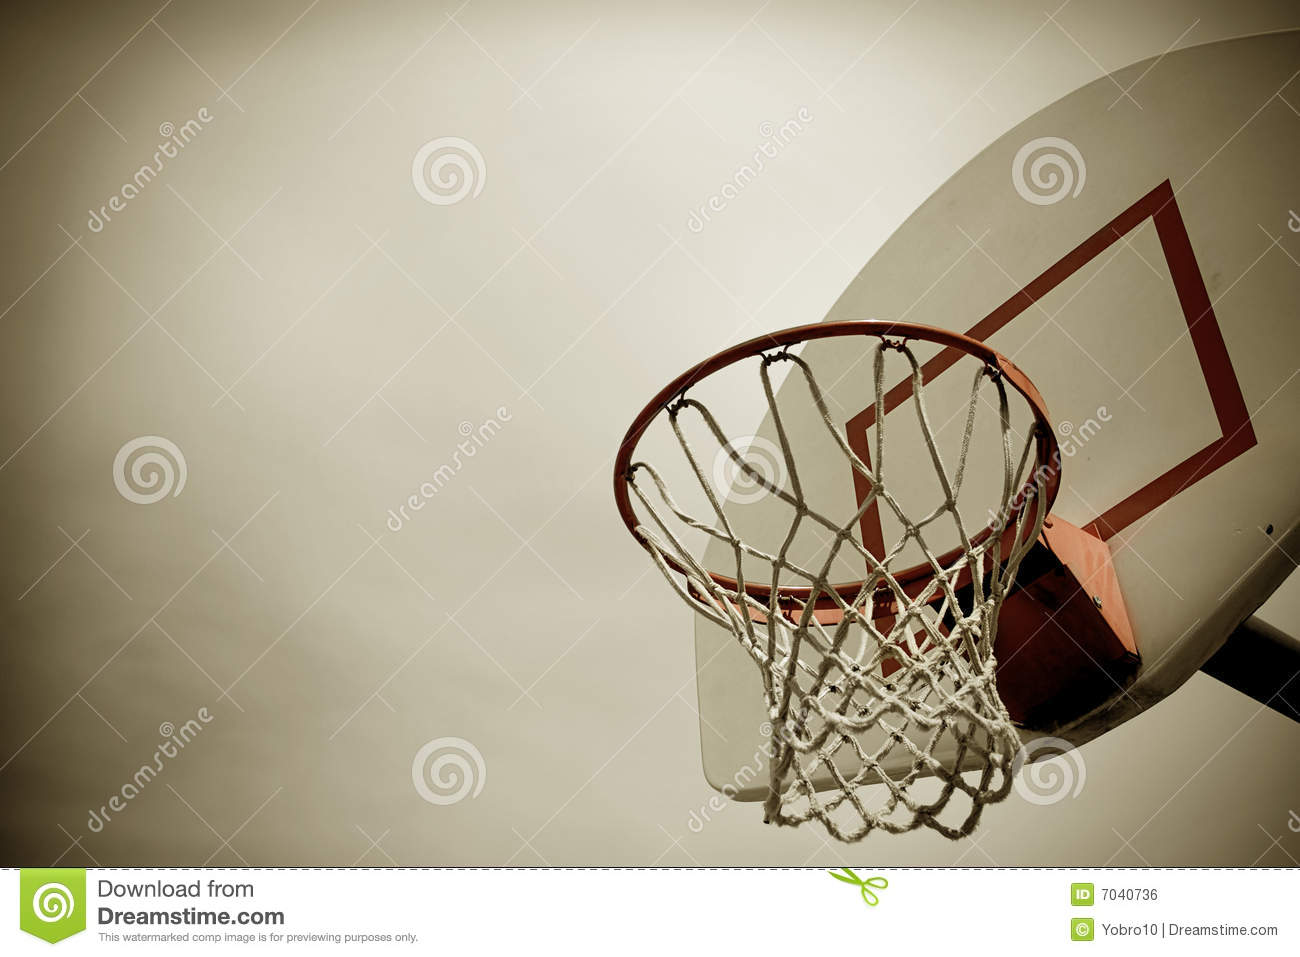 Cercle de basket-ball